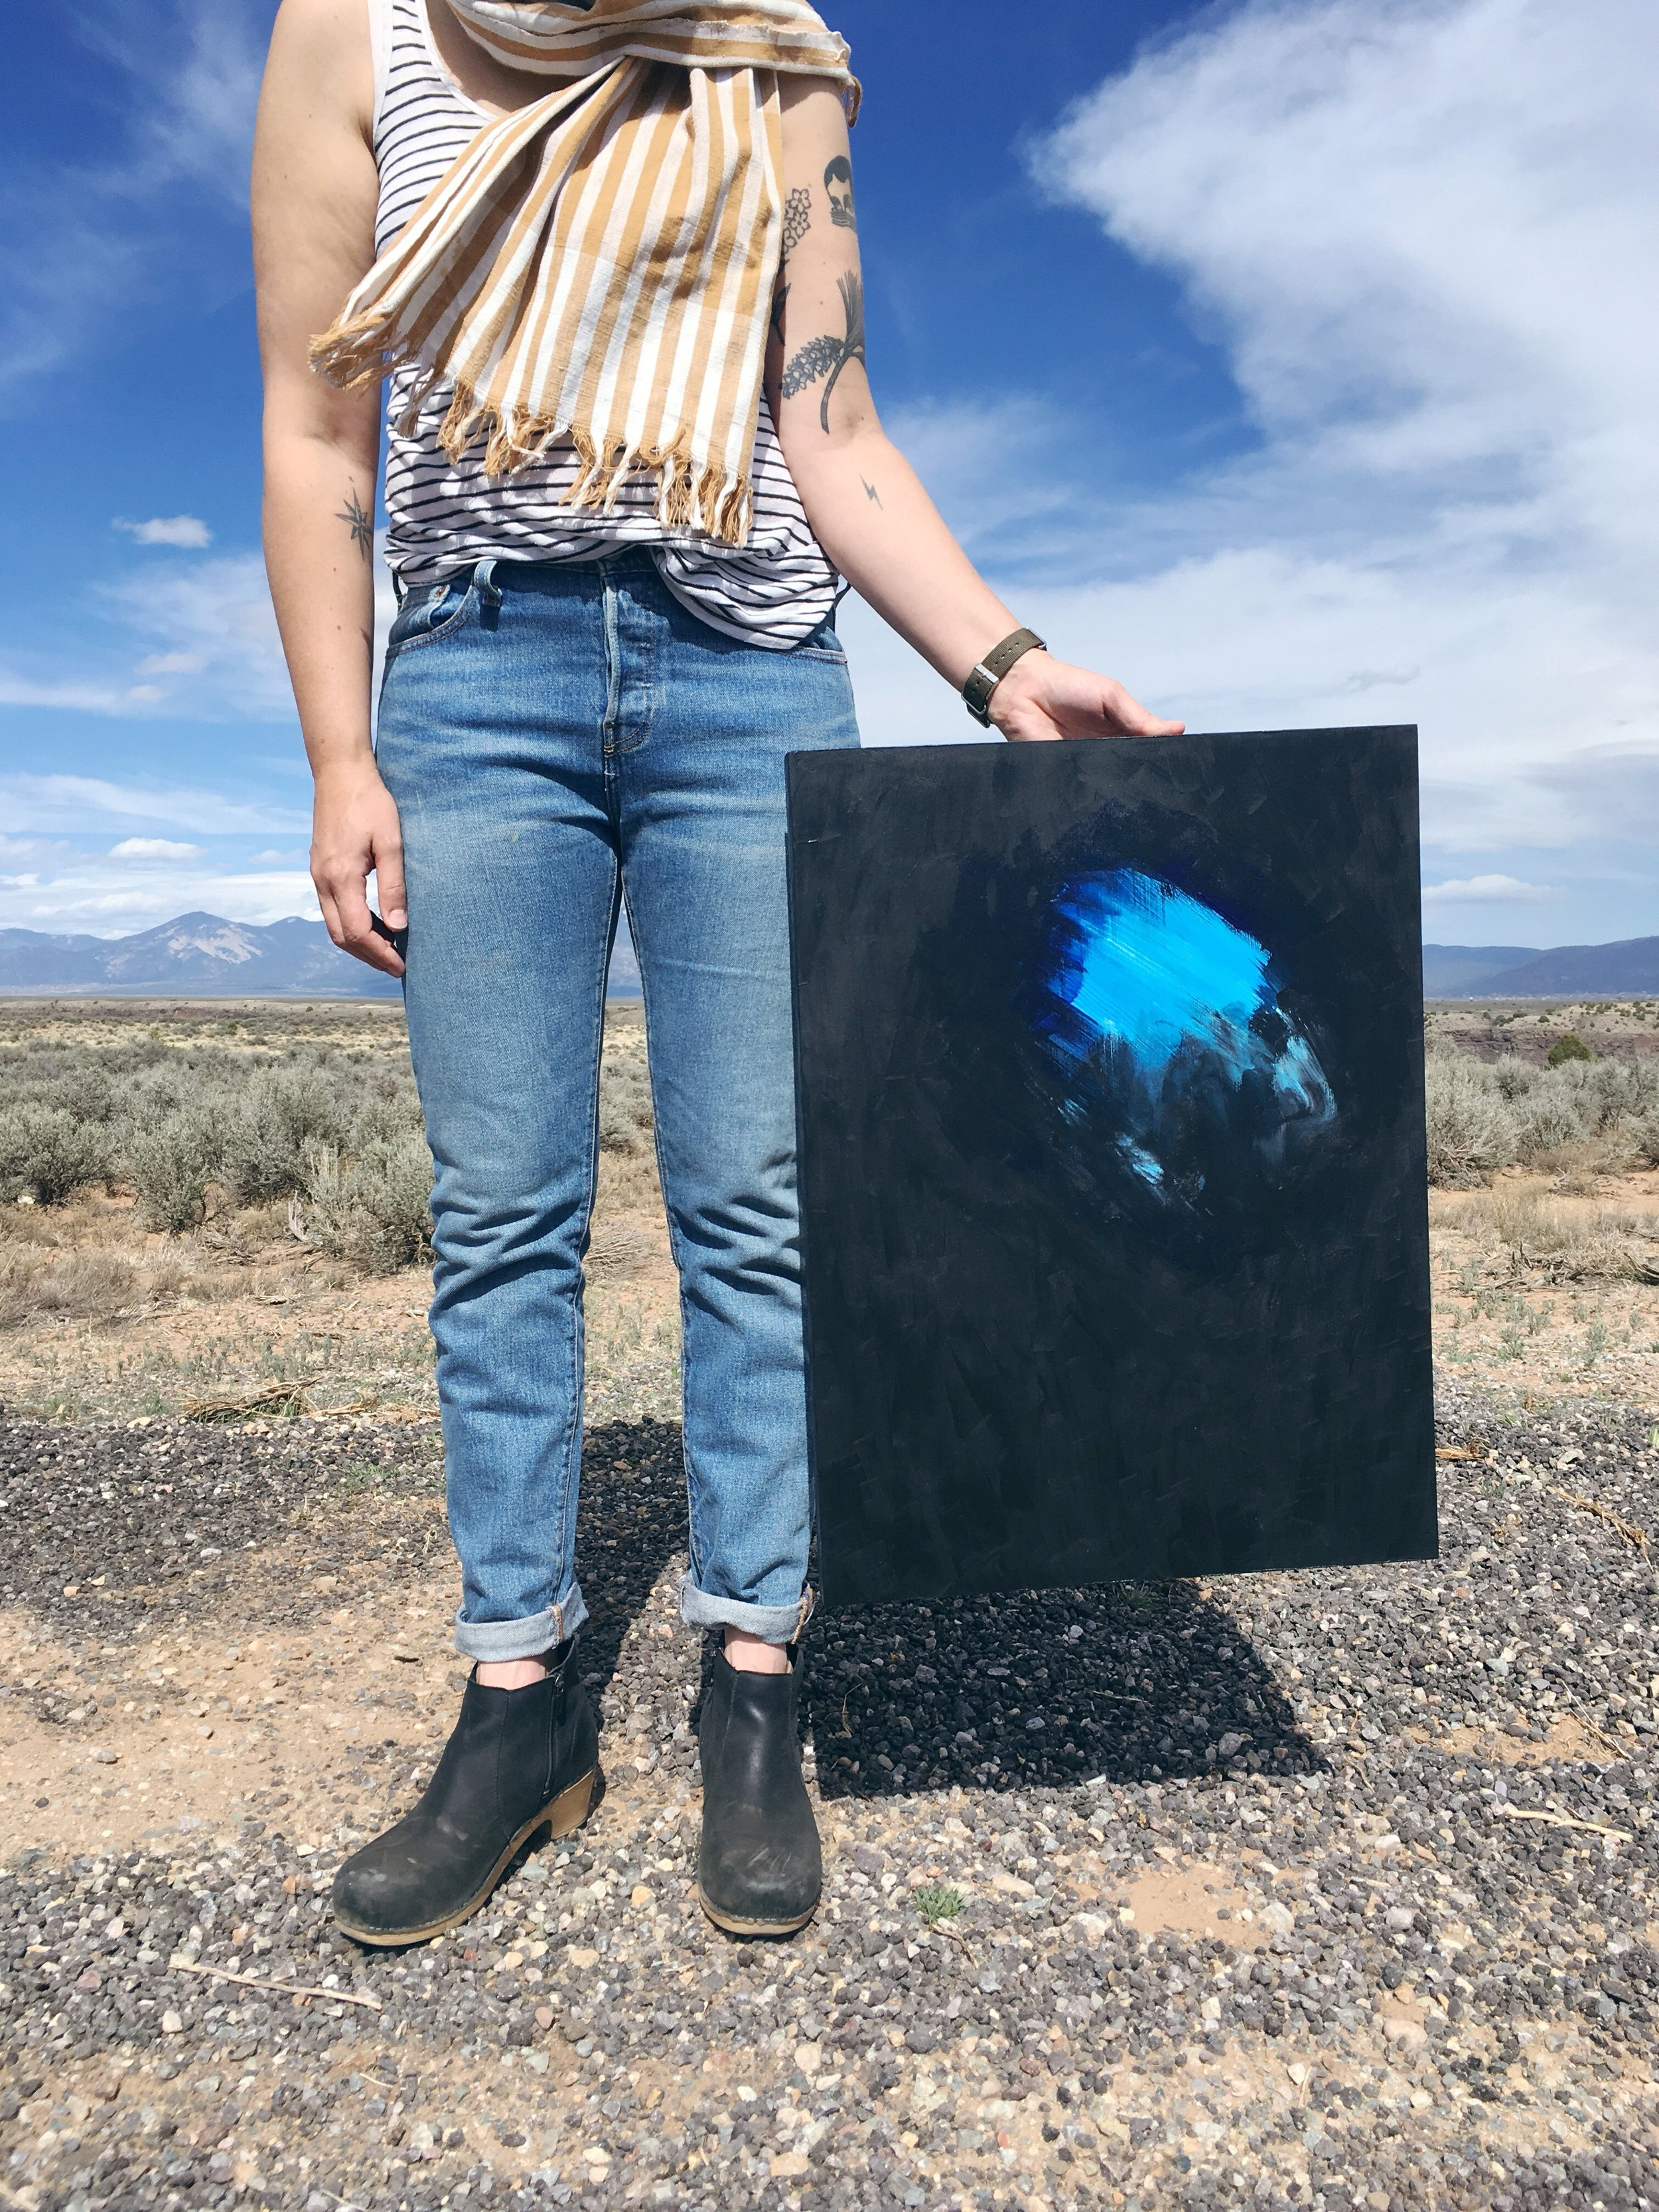 April: Taking the high road to Taos to deliver a painting for a show (and staying overnight to find some good hot springs!)